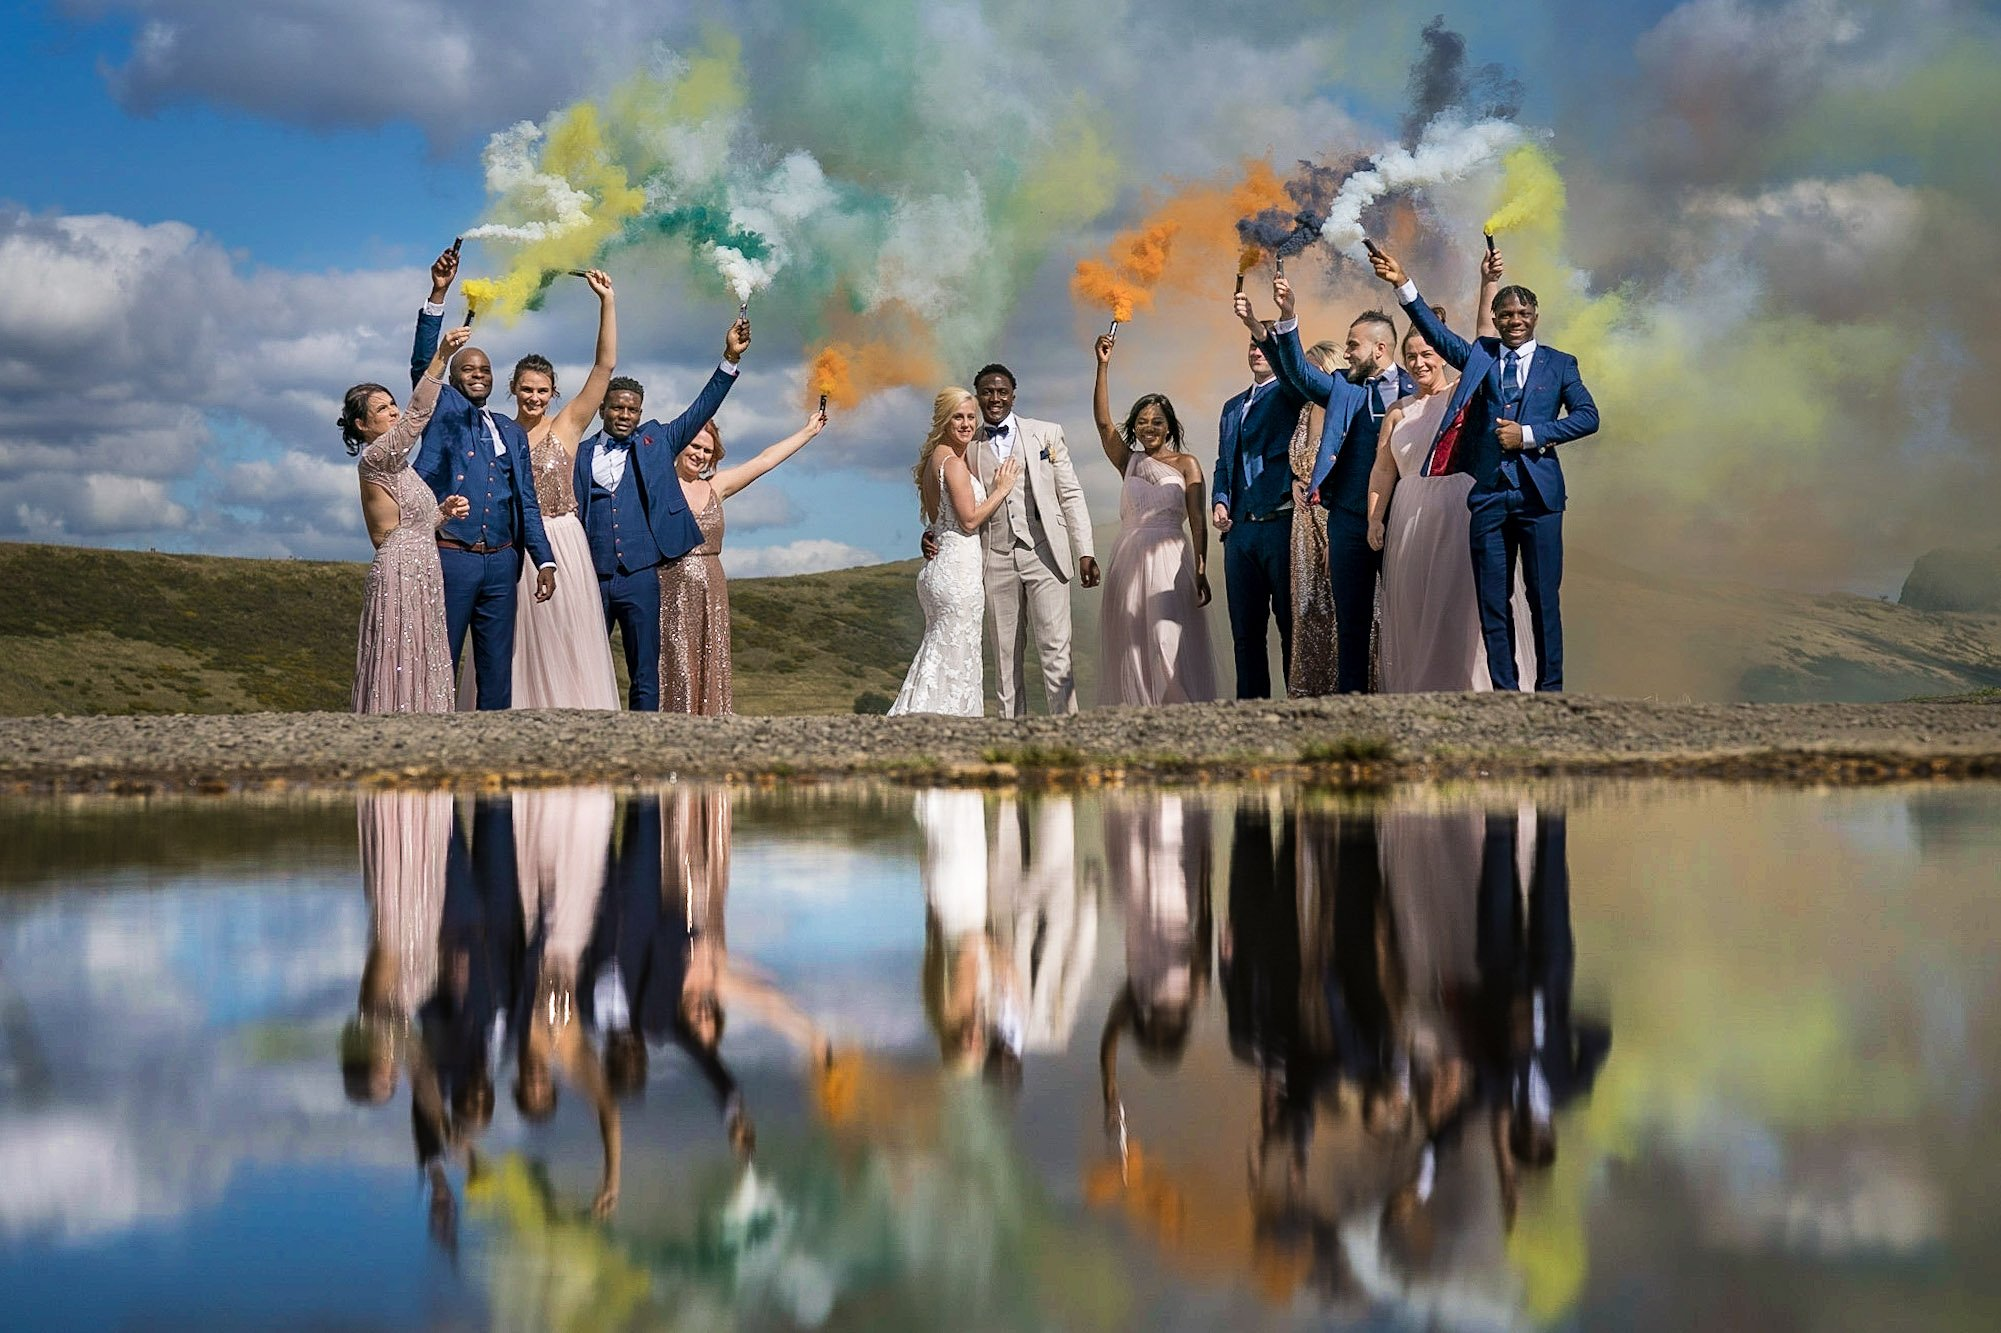 YFFUK Your Favourite Frame Mwasuku Peak District Castleton Mam Tor Bridal party reflected in the water pool in the old road holding smoke bombs grenades of different colours